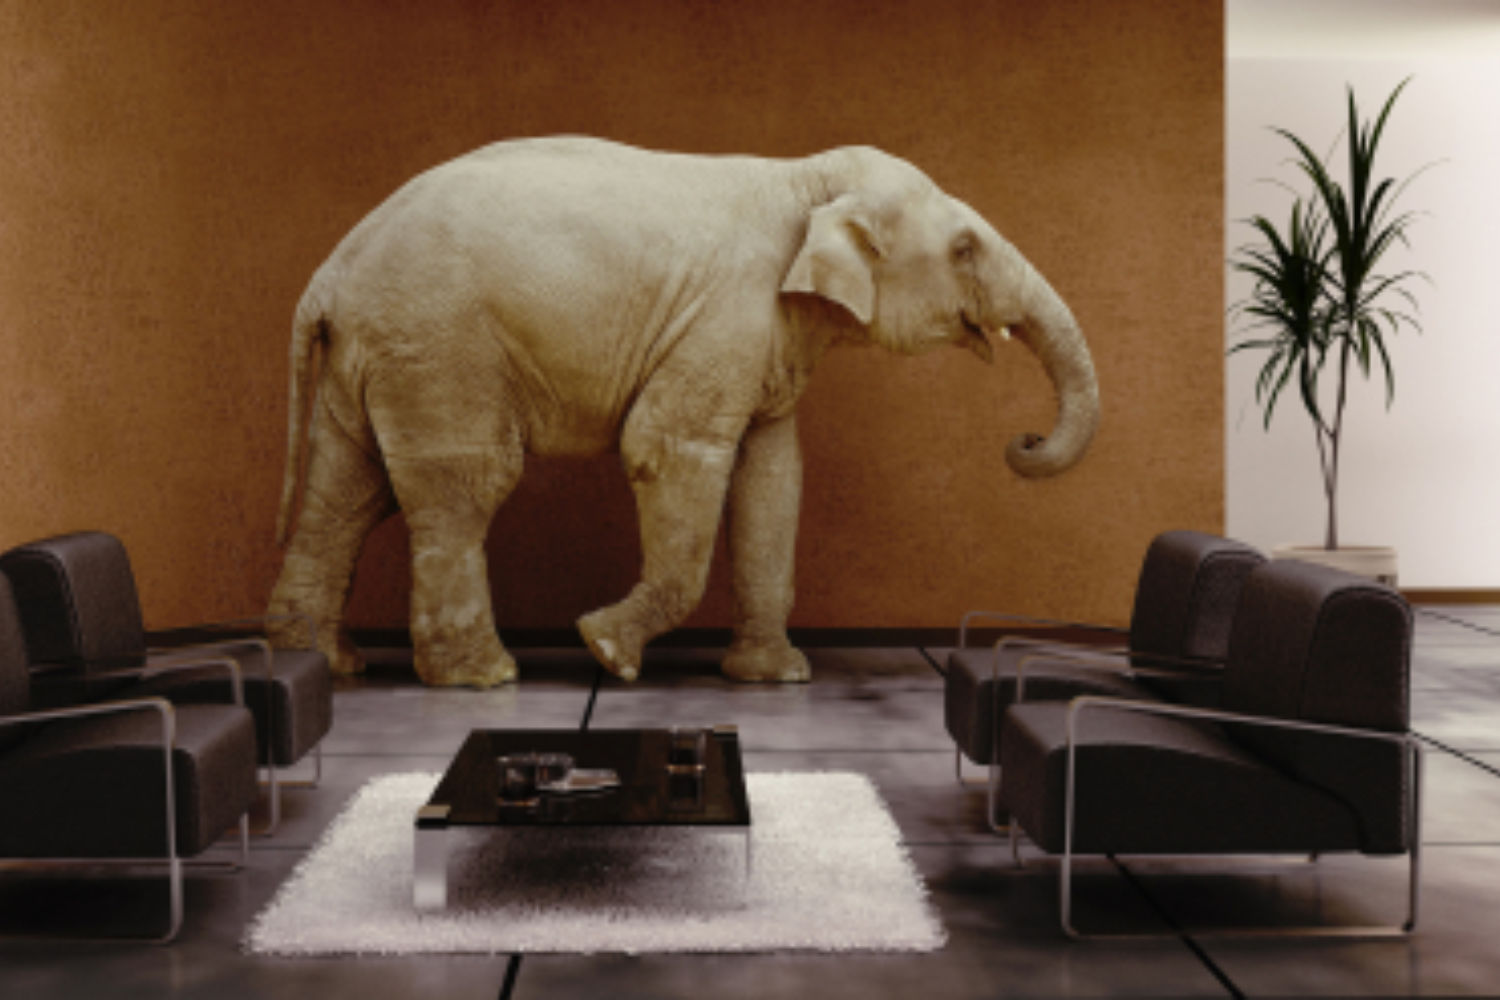 Elephants in the Room of Creativity and Innovation Talk